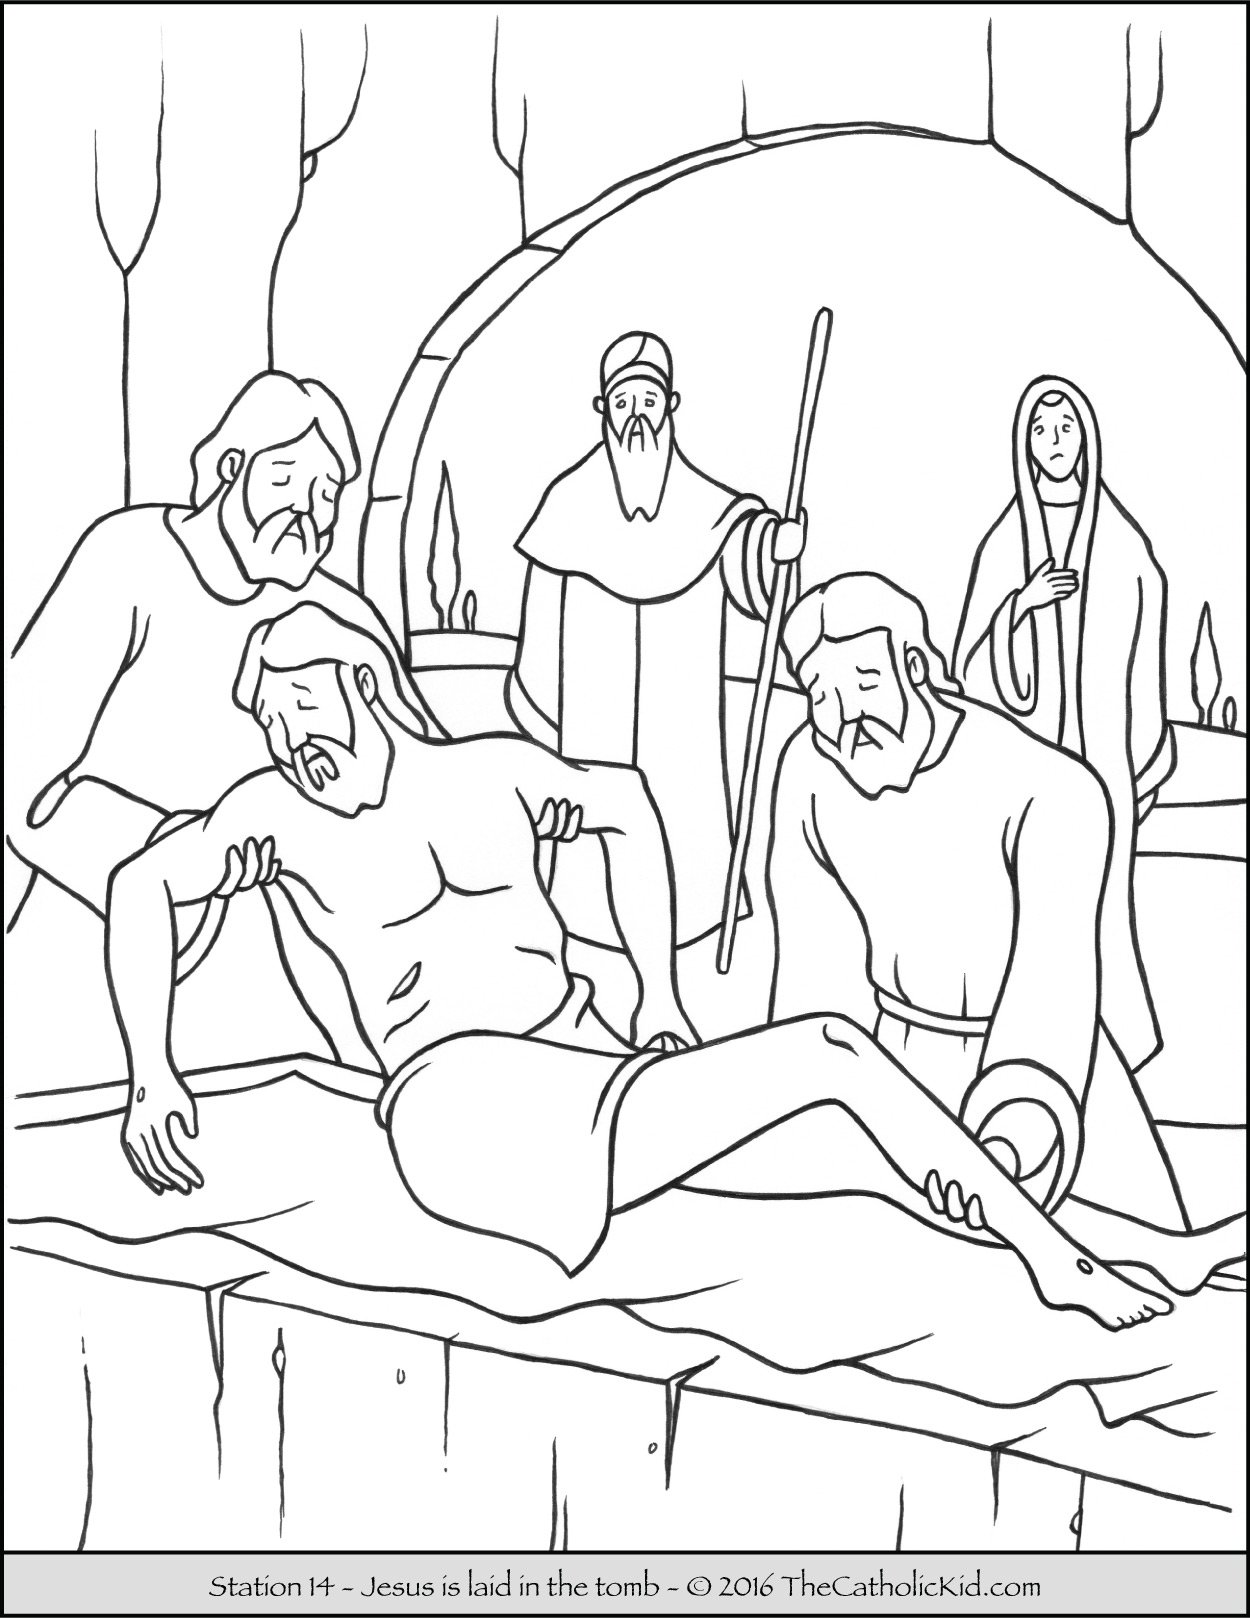 Stations of the Cross Coloring Pages 14 - Jesus is laid in the tomb